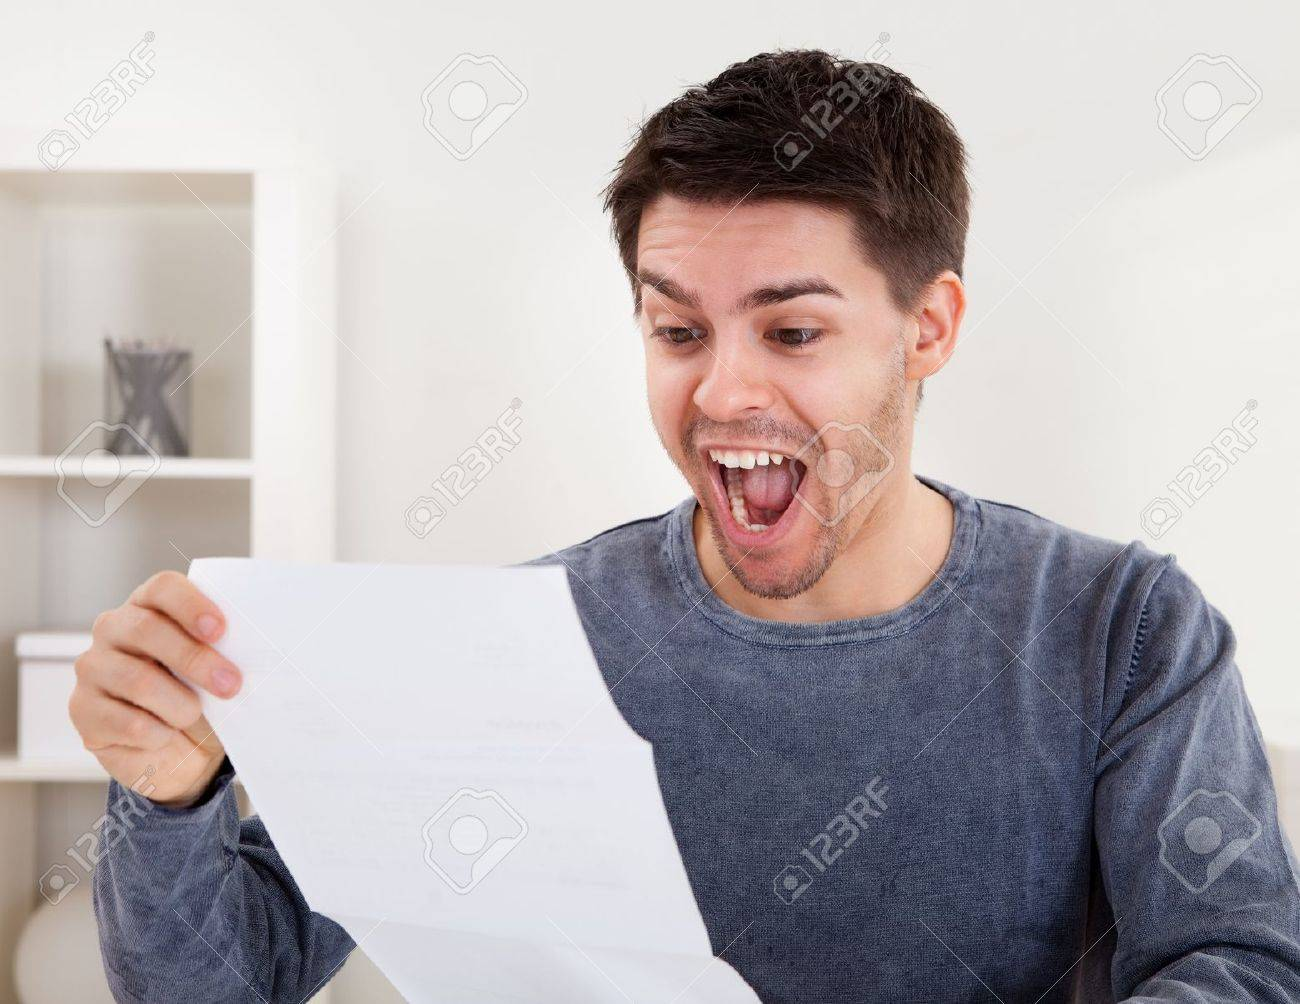 Exultant young man cheering at good news he has just received in a document that he is reading Standard-Bild - 17384508